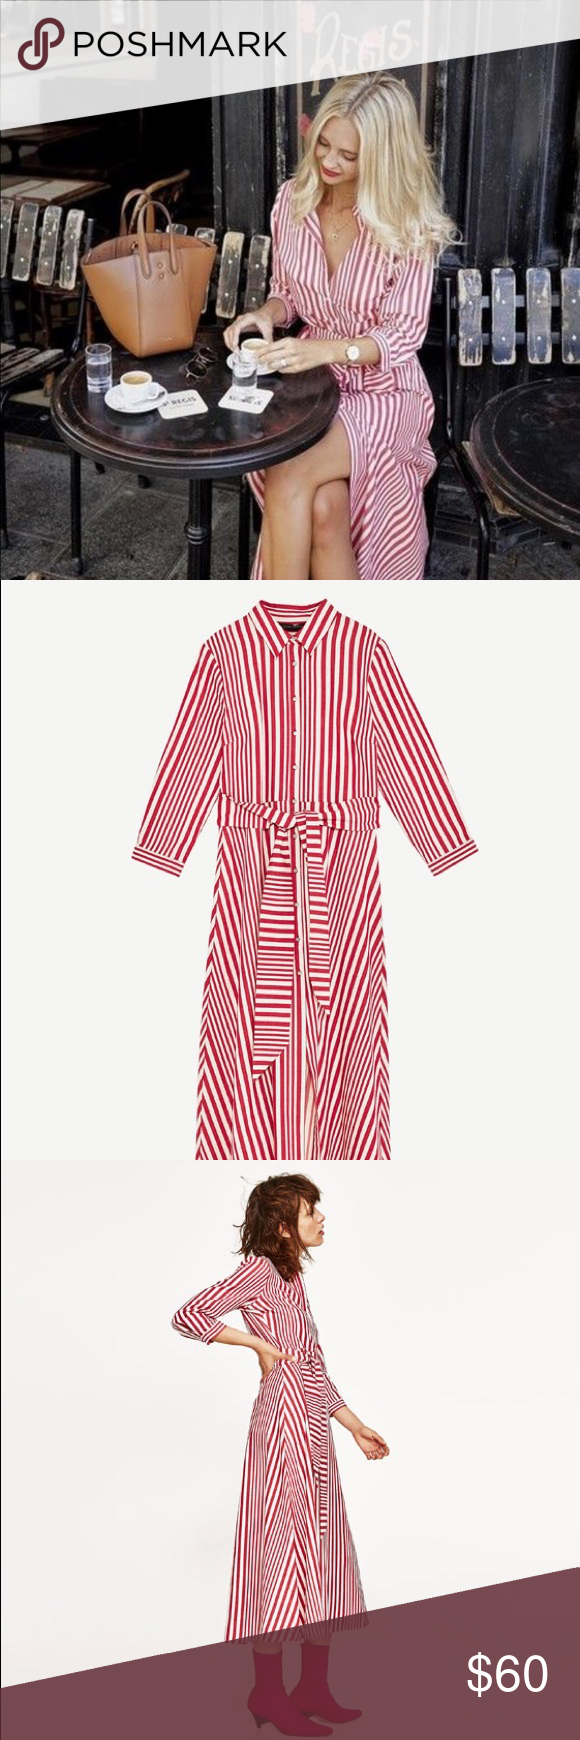 09fc0882 NWT Zara Red White Striped Midi Shirt Dress Long, striped tunic with long  sleeves and